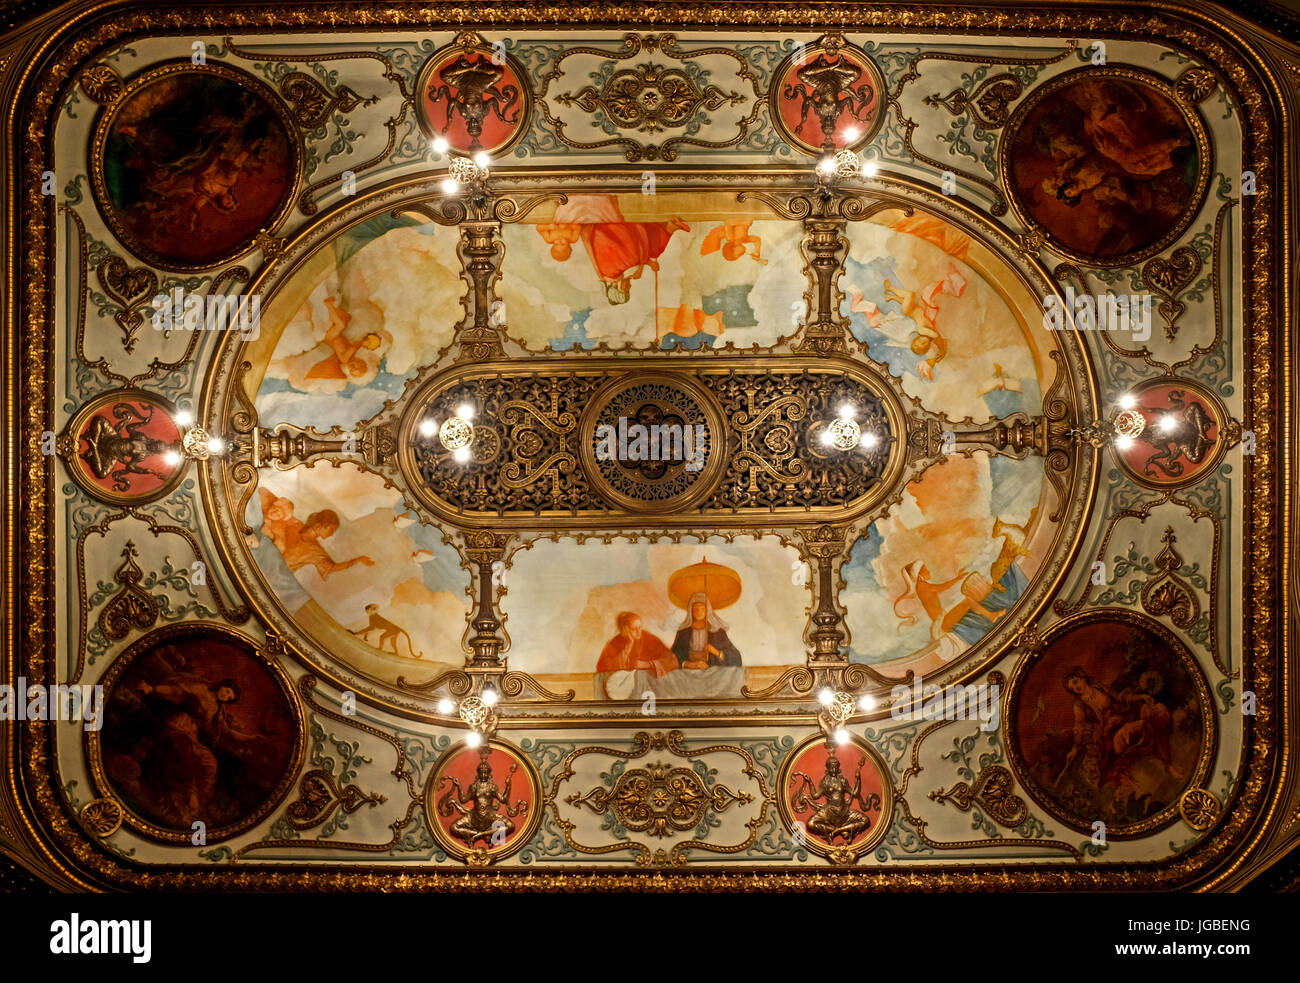 Ceiling of the Grand Opera House, Belfast. - Stock Image